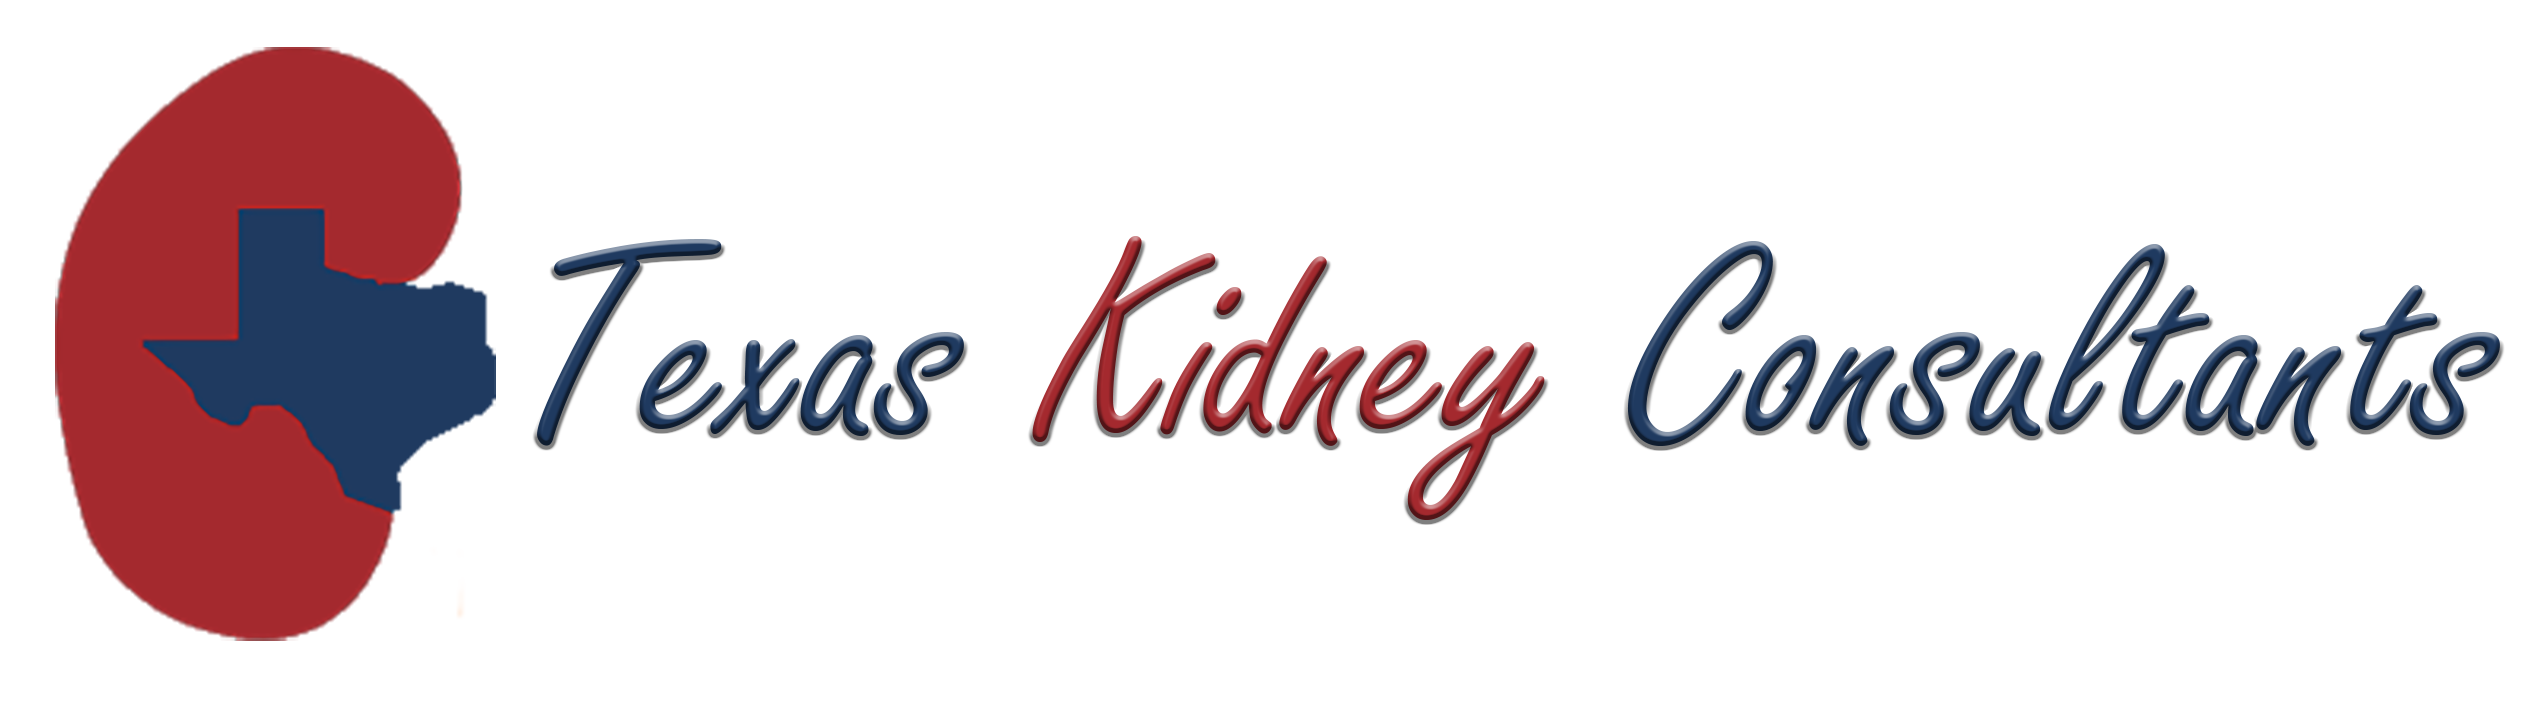 Texas Kidney Consultants